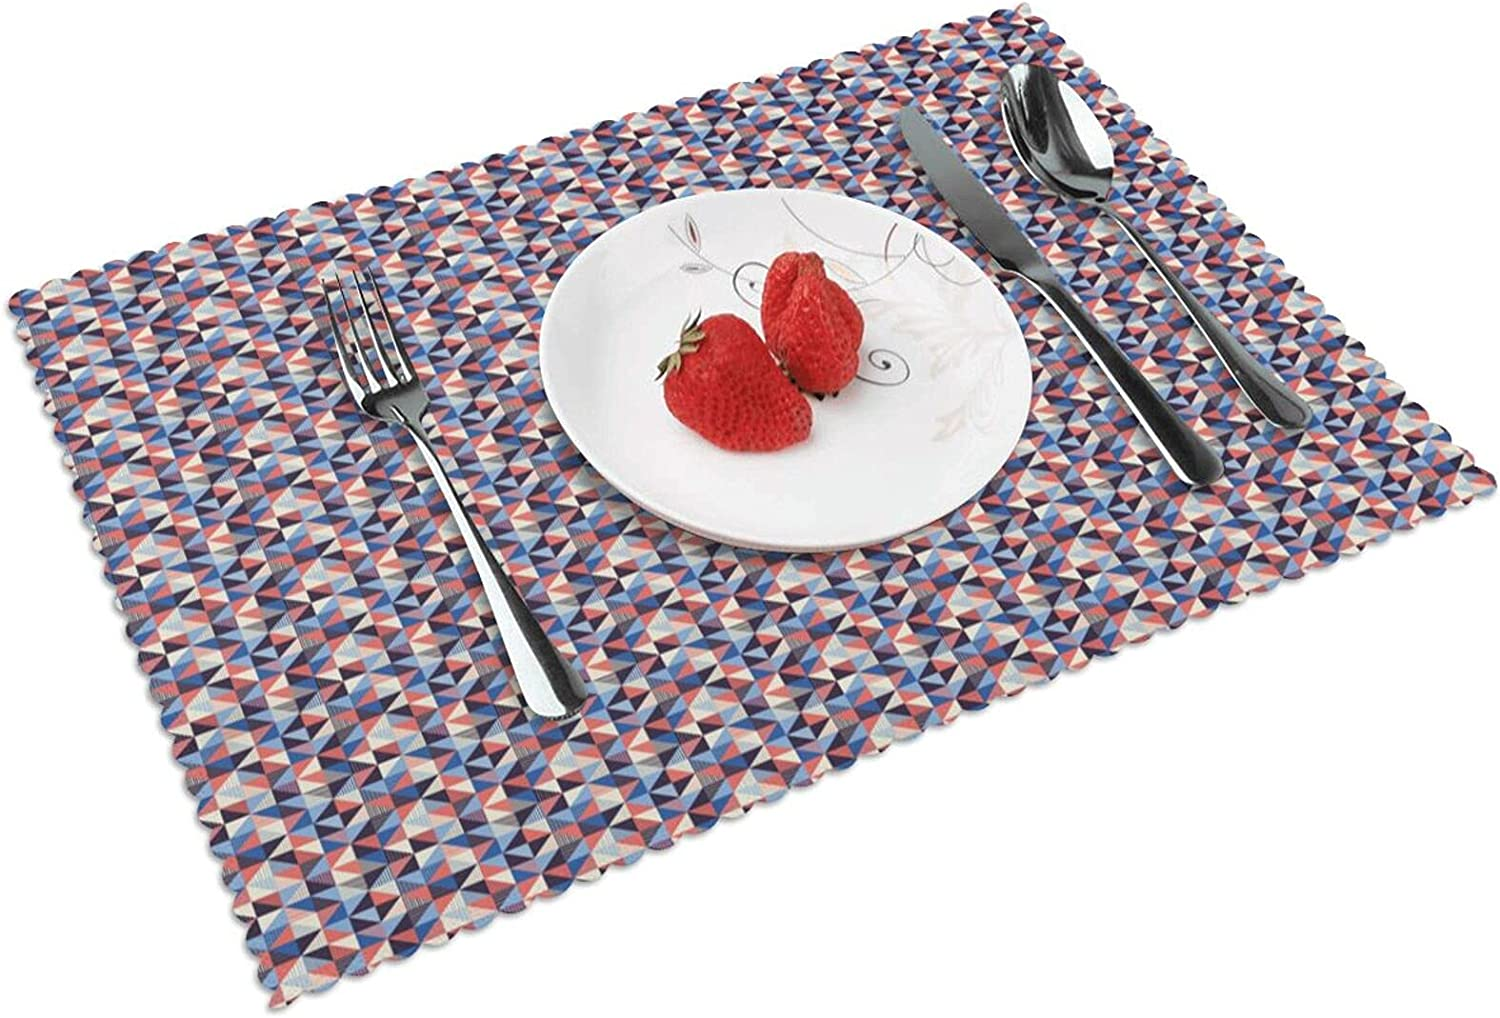 Max 42% OFF Vsldfjc Baby Placemat Outdoor Placemats Patio Heat-Res Store Table for